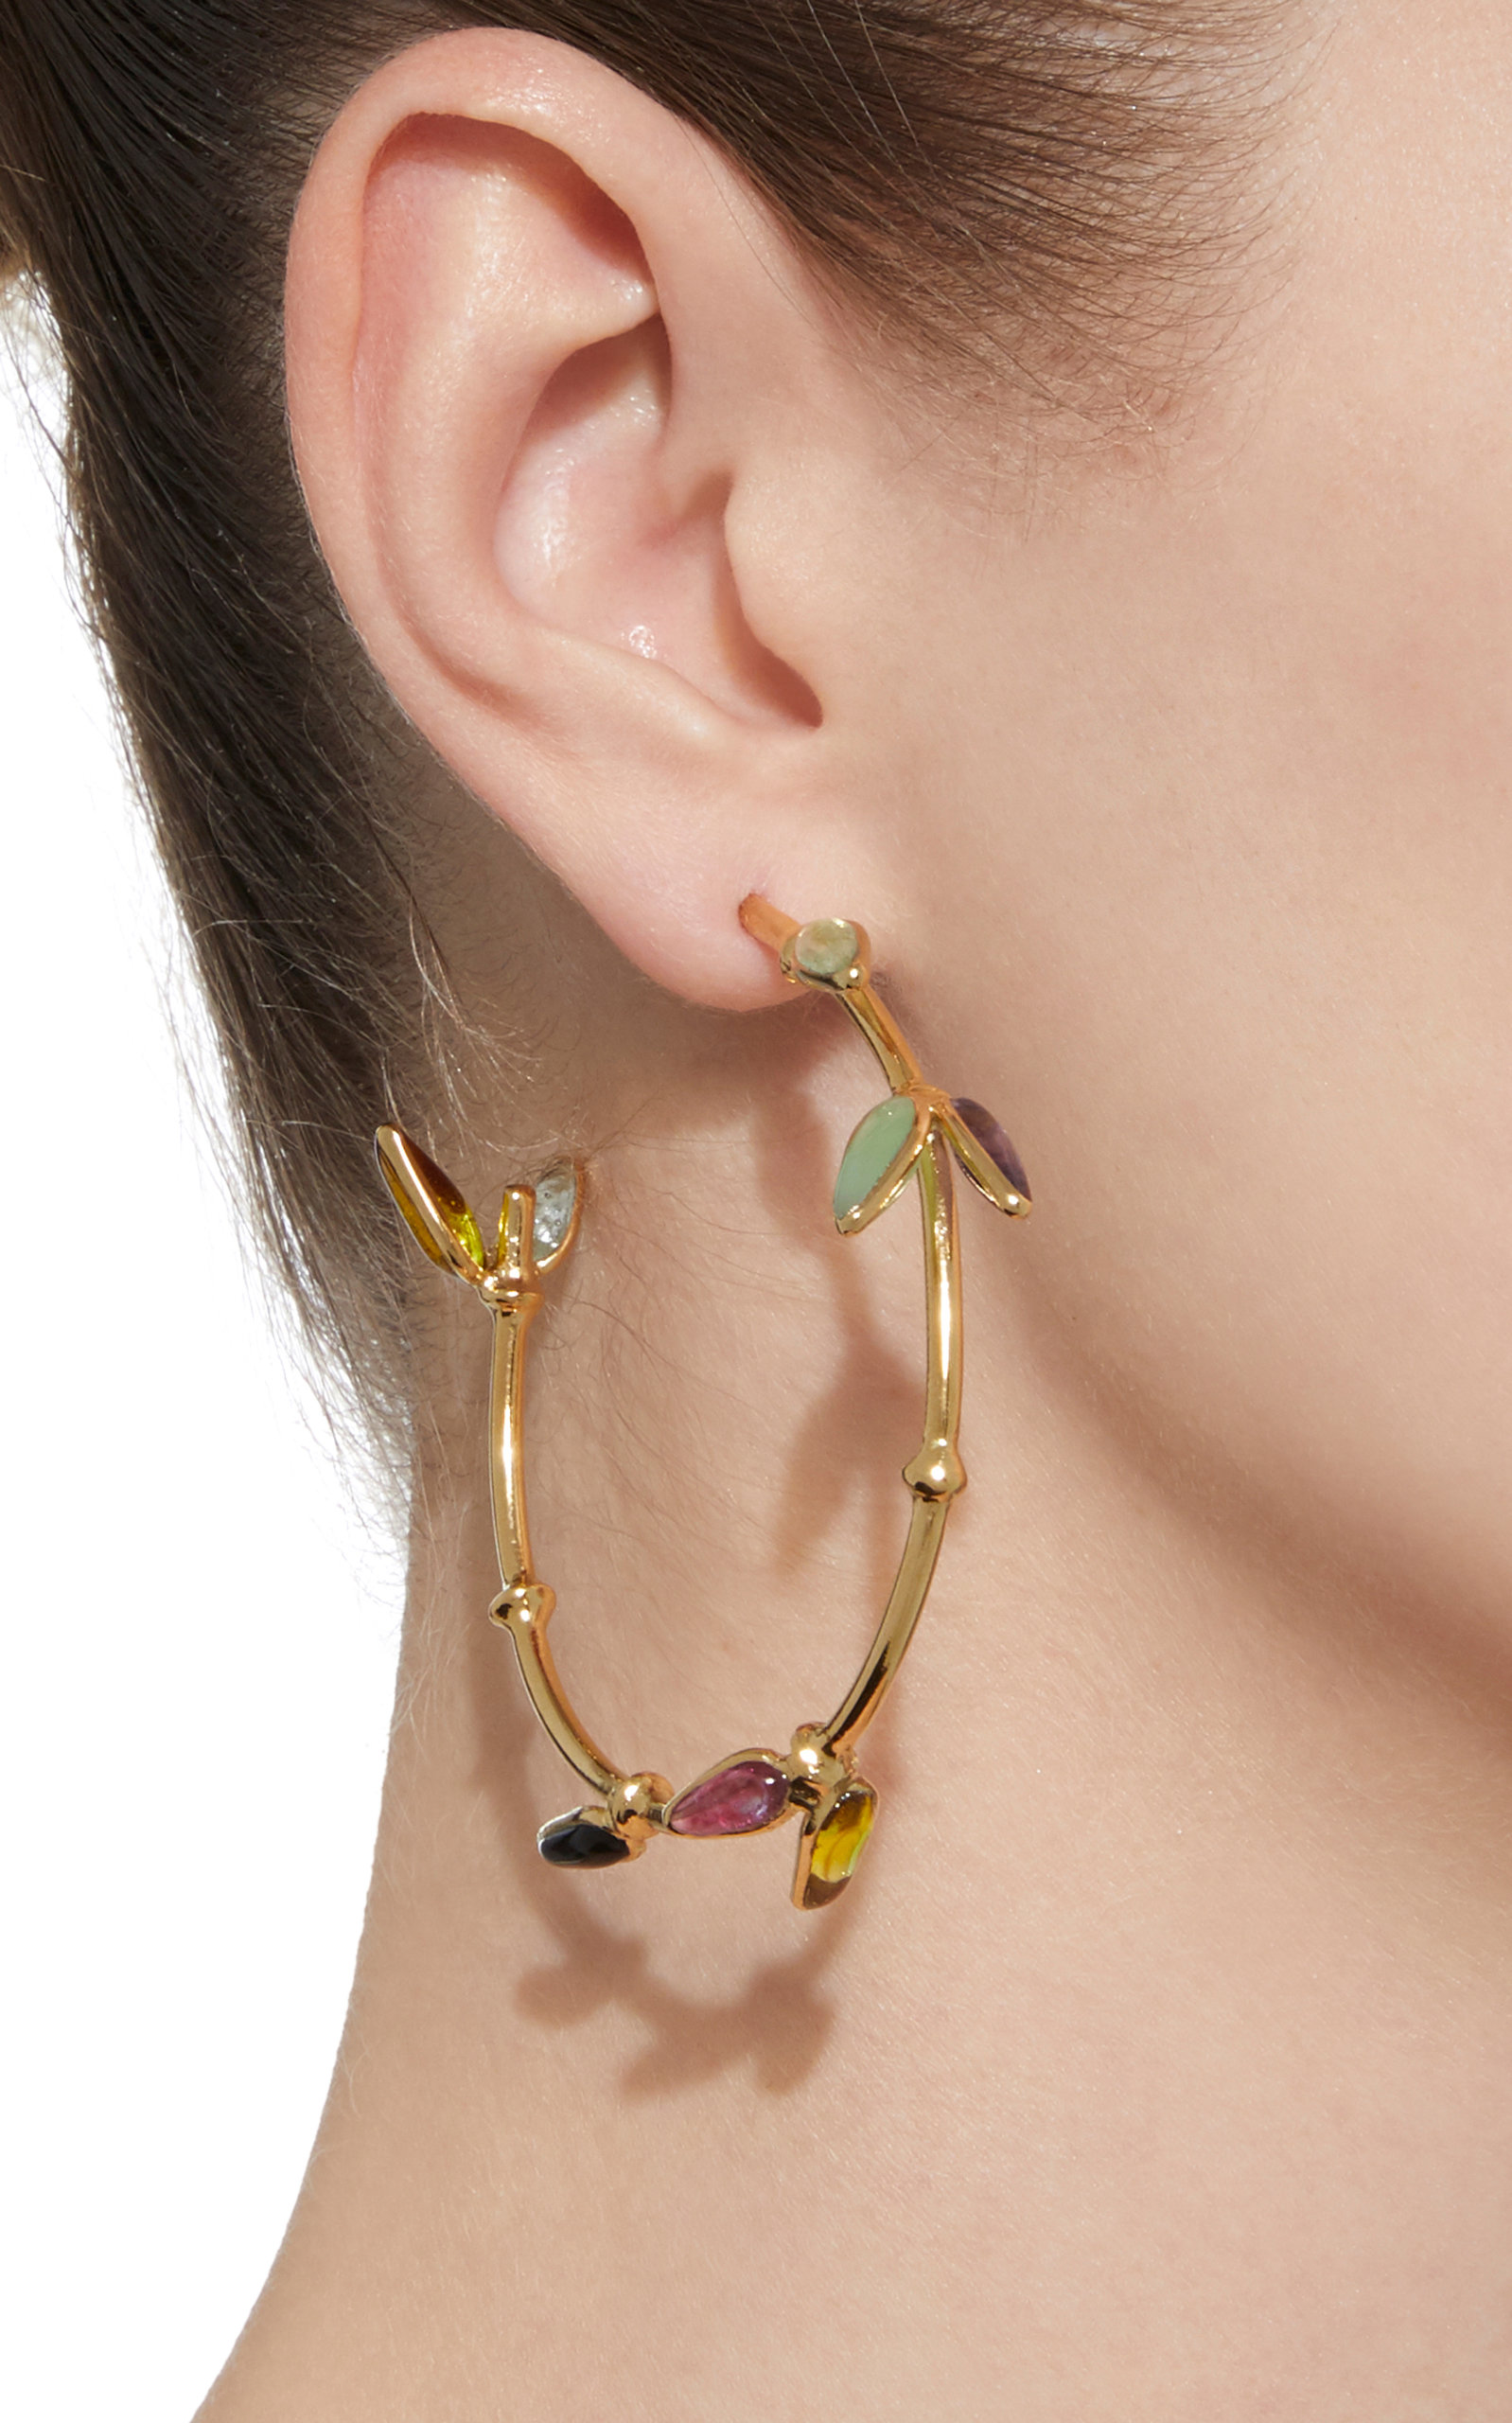 Bamboo Creole 24K Gold-Plated Brass and Poured Glass Pierced Earrings Gripoix qATX9wWt